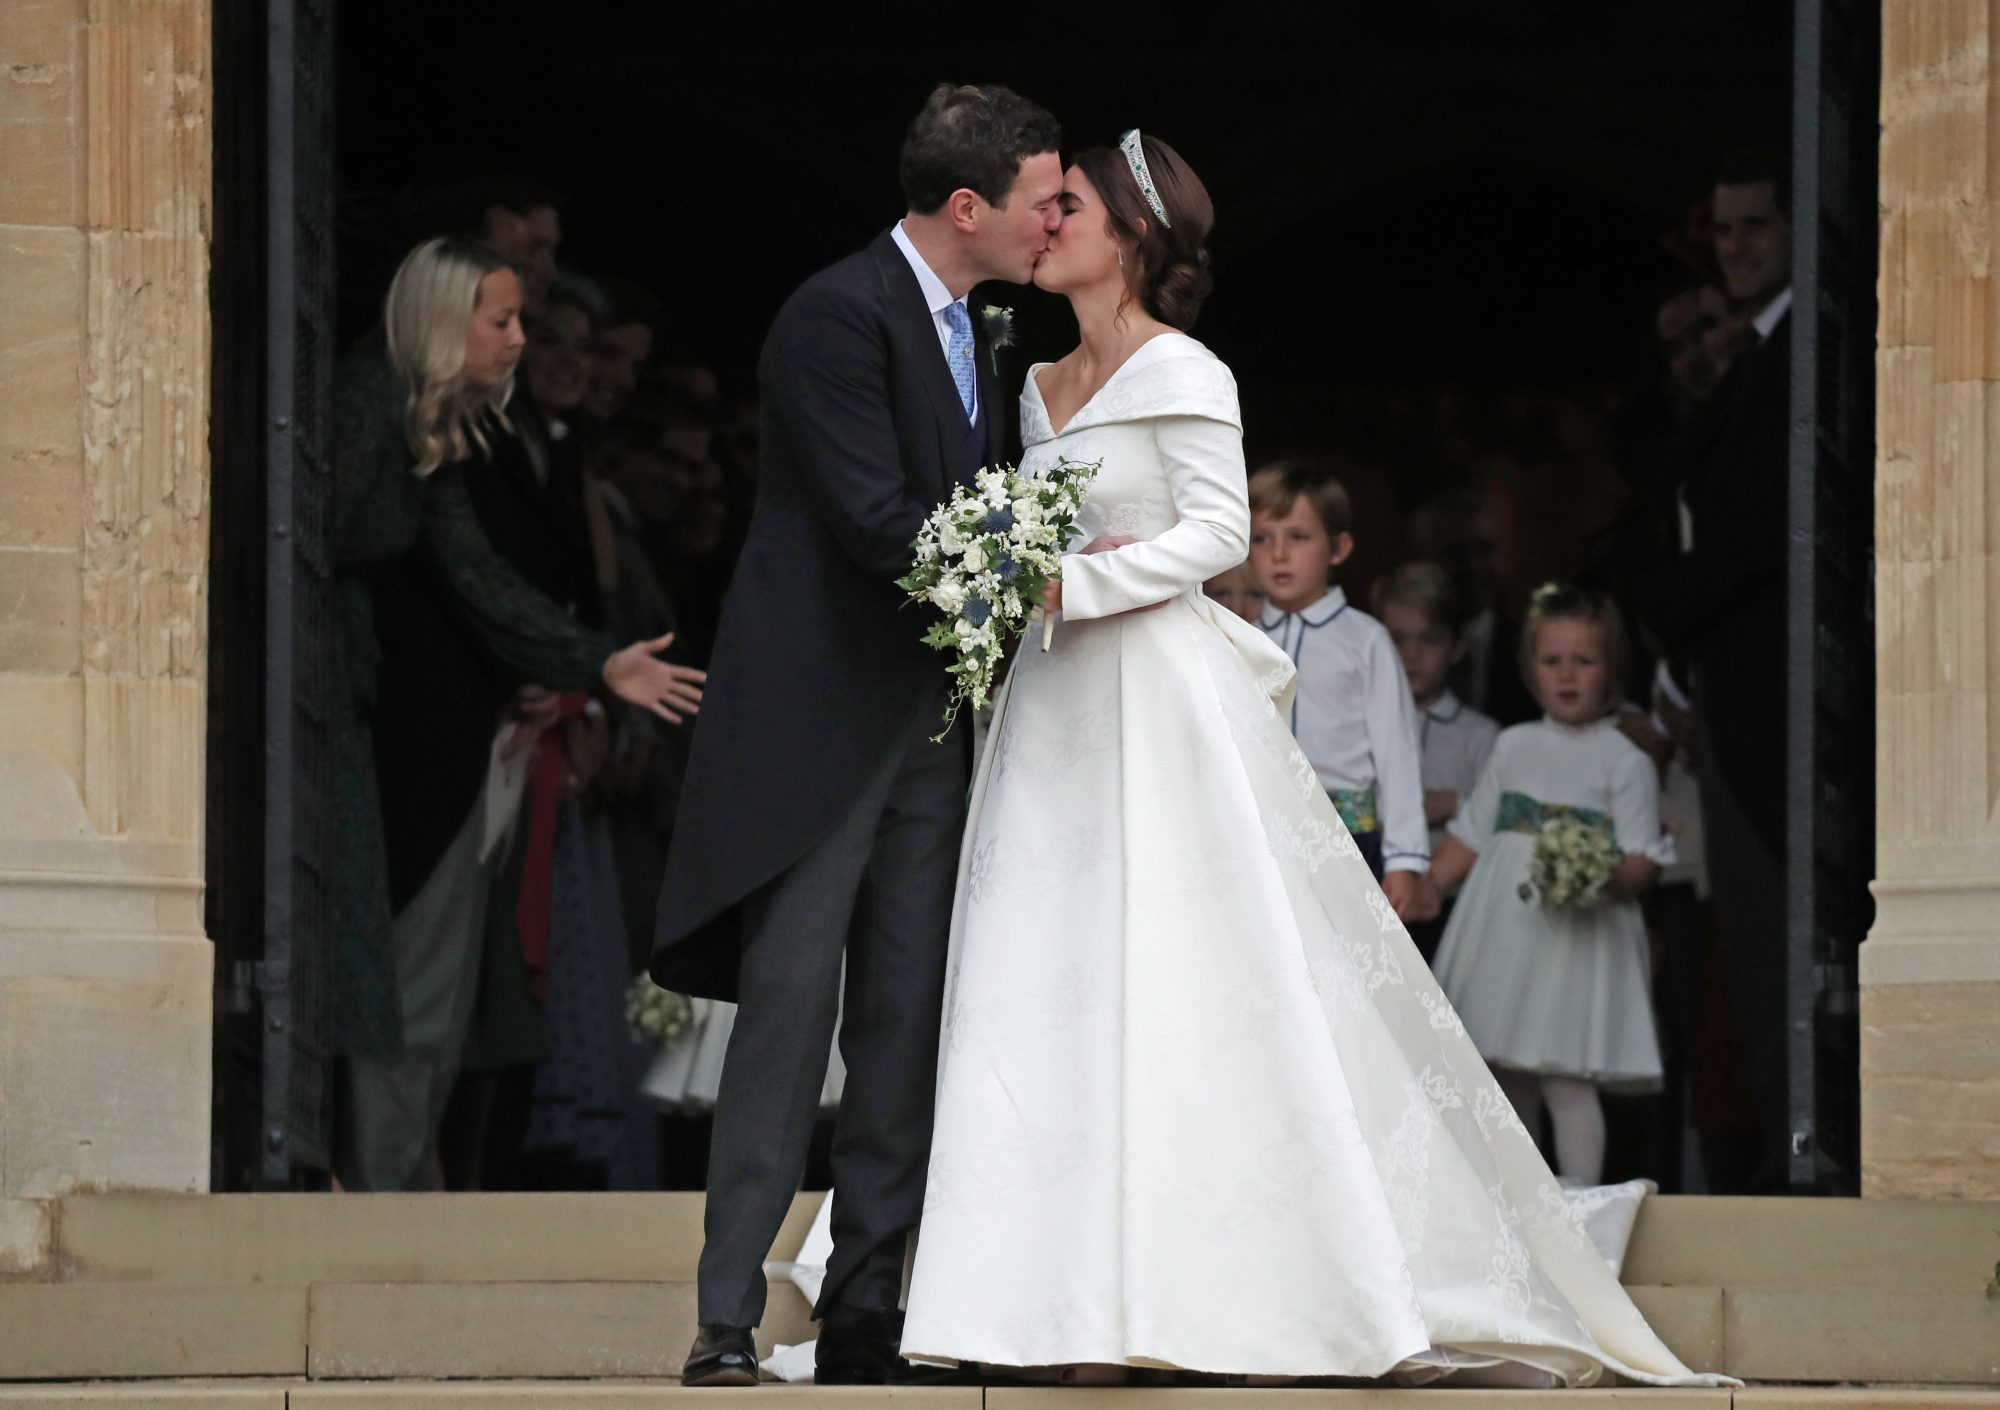 Princess Eugenie and Jack Brooksbank Are Married! Inside Their Royal Wedding